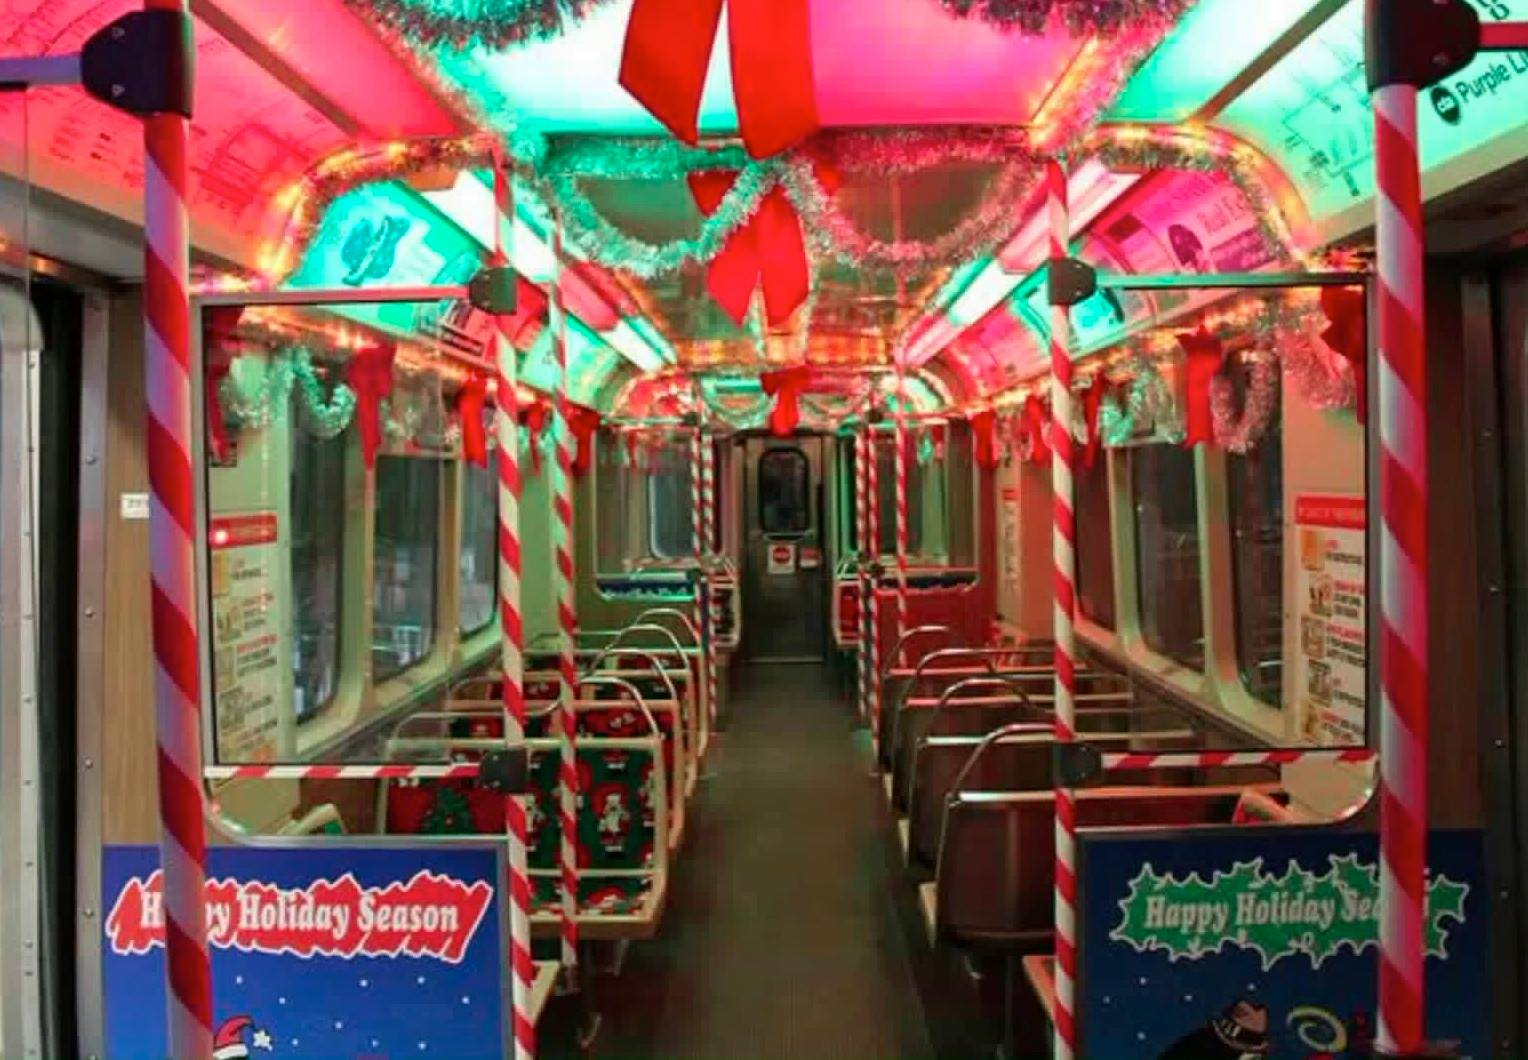 Riders Will Be Greeted By Santas Elves With Plenty Of Candy Canes For Good Boys And Girls